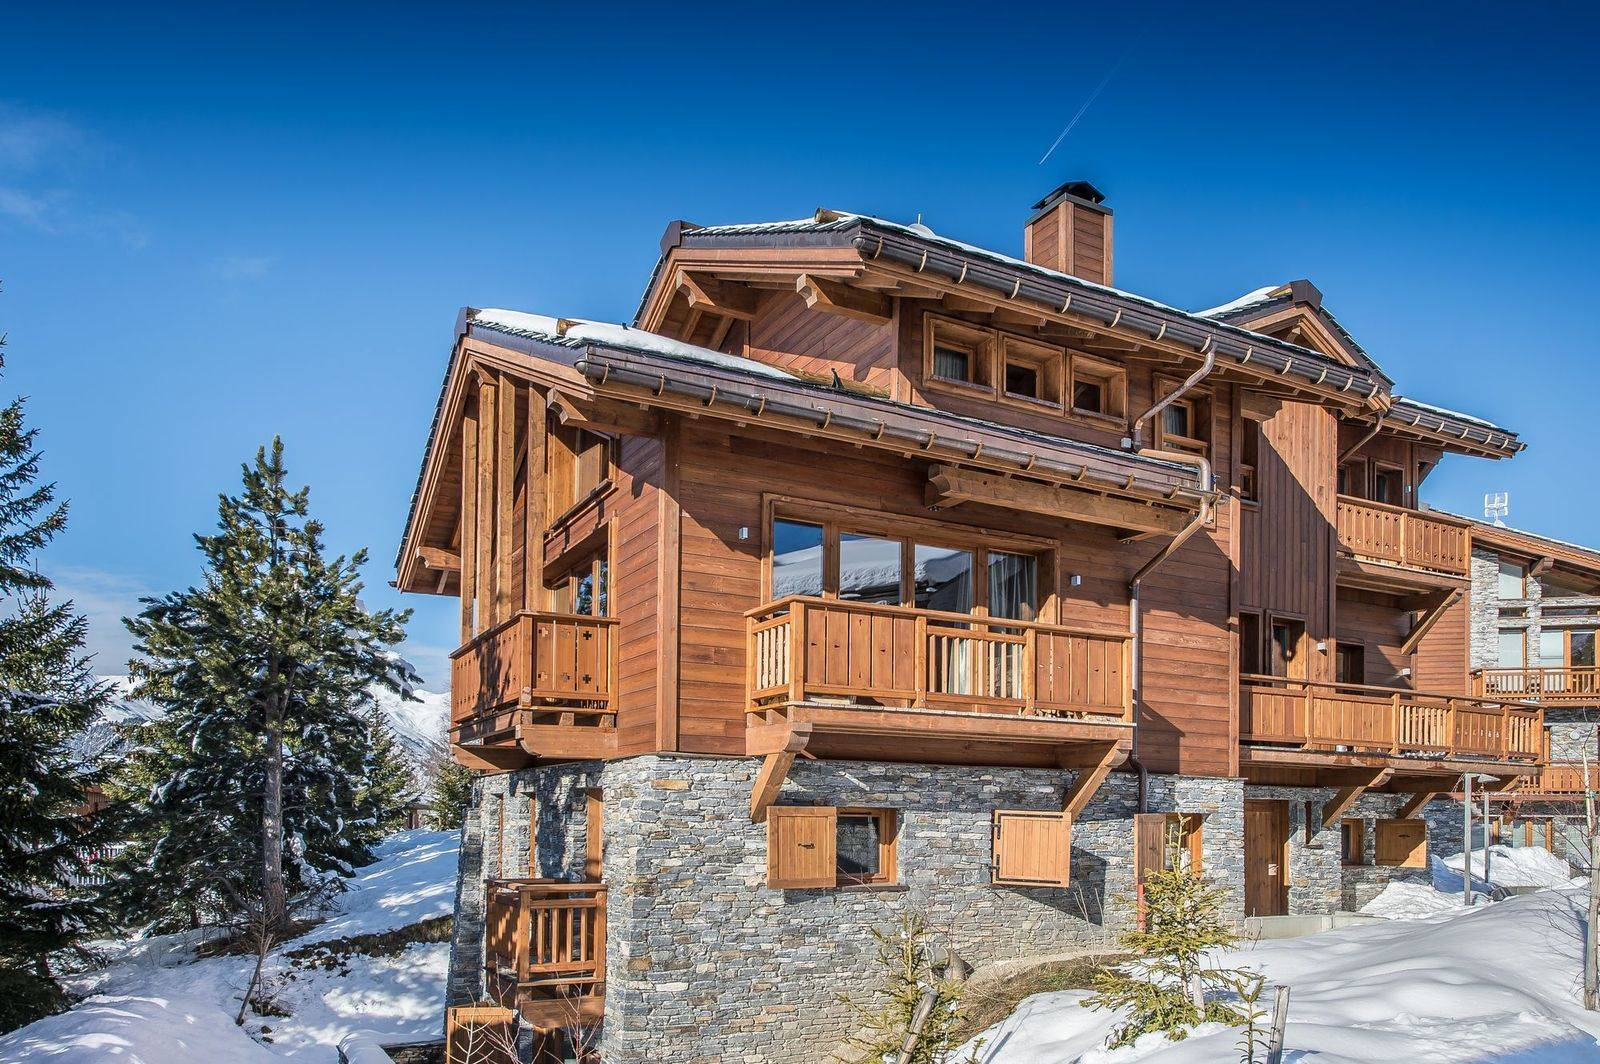 chalet_overview_01